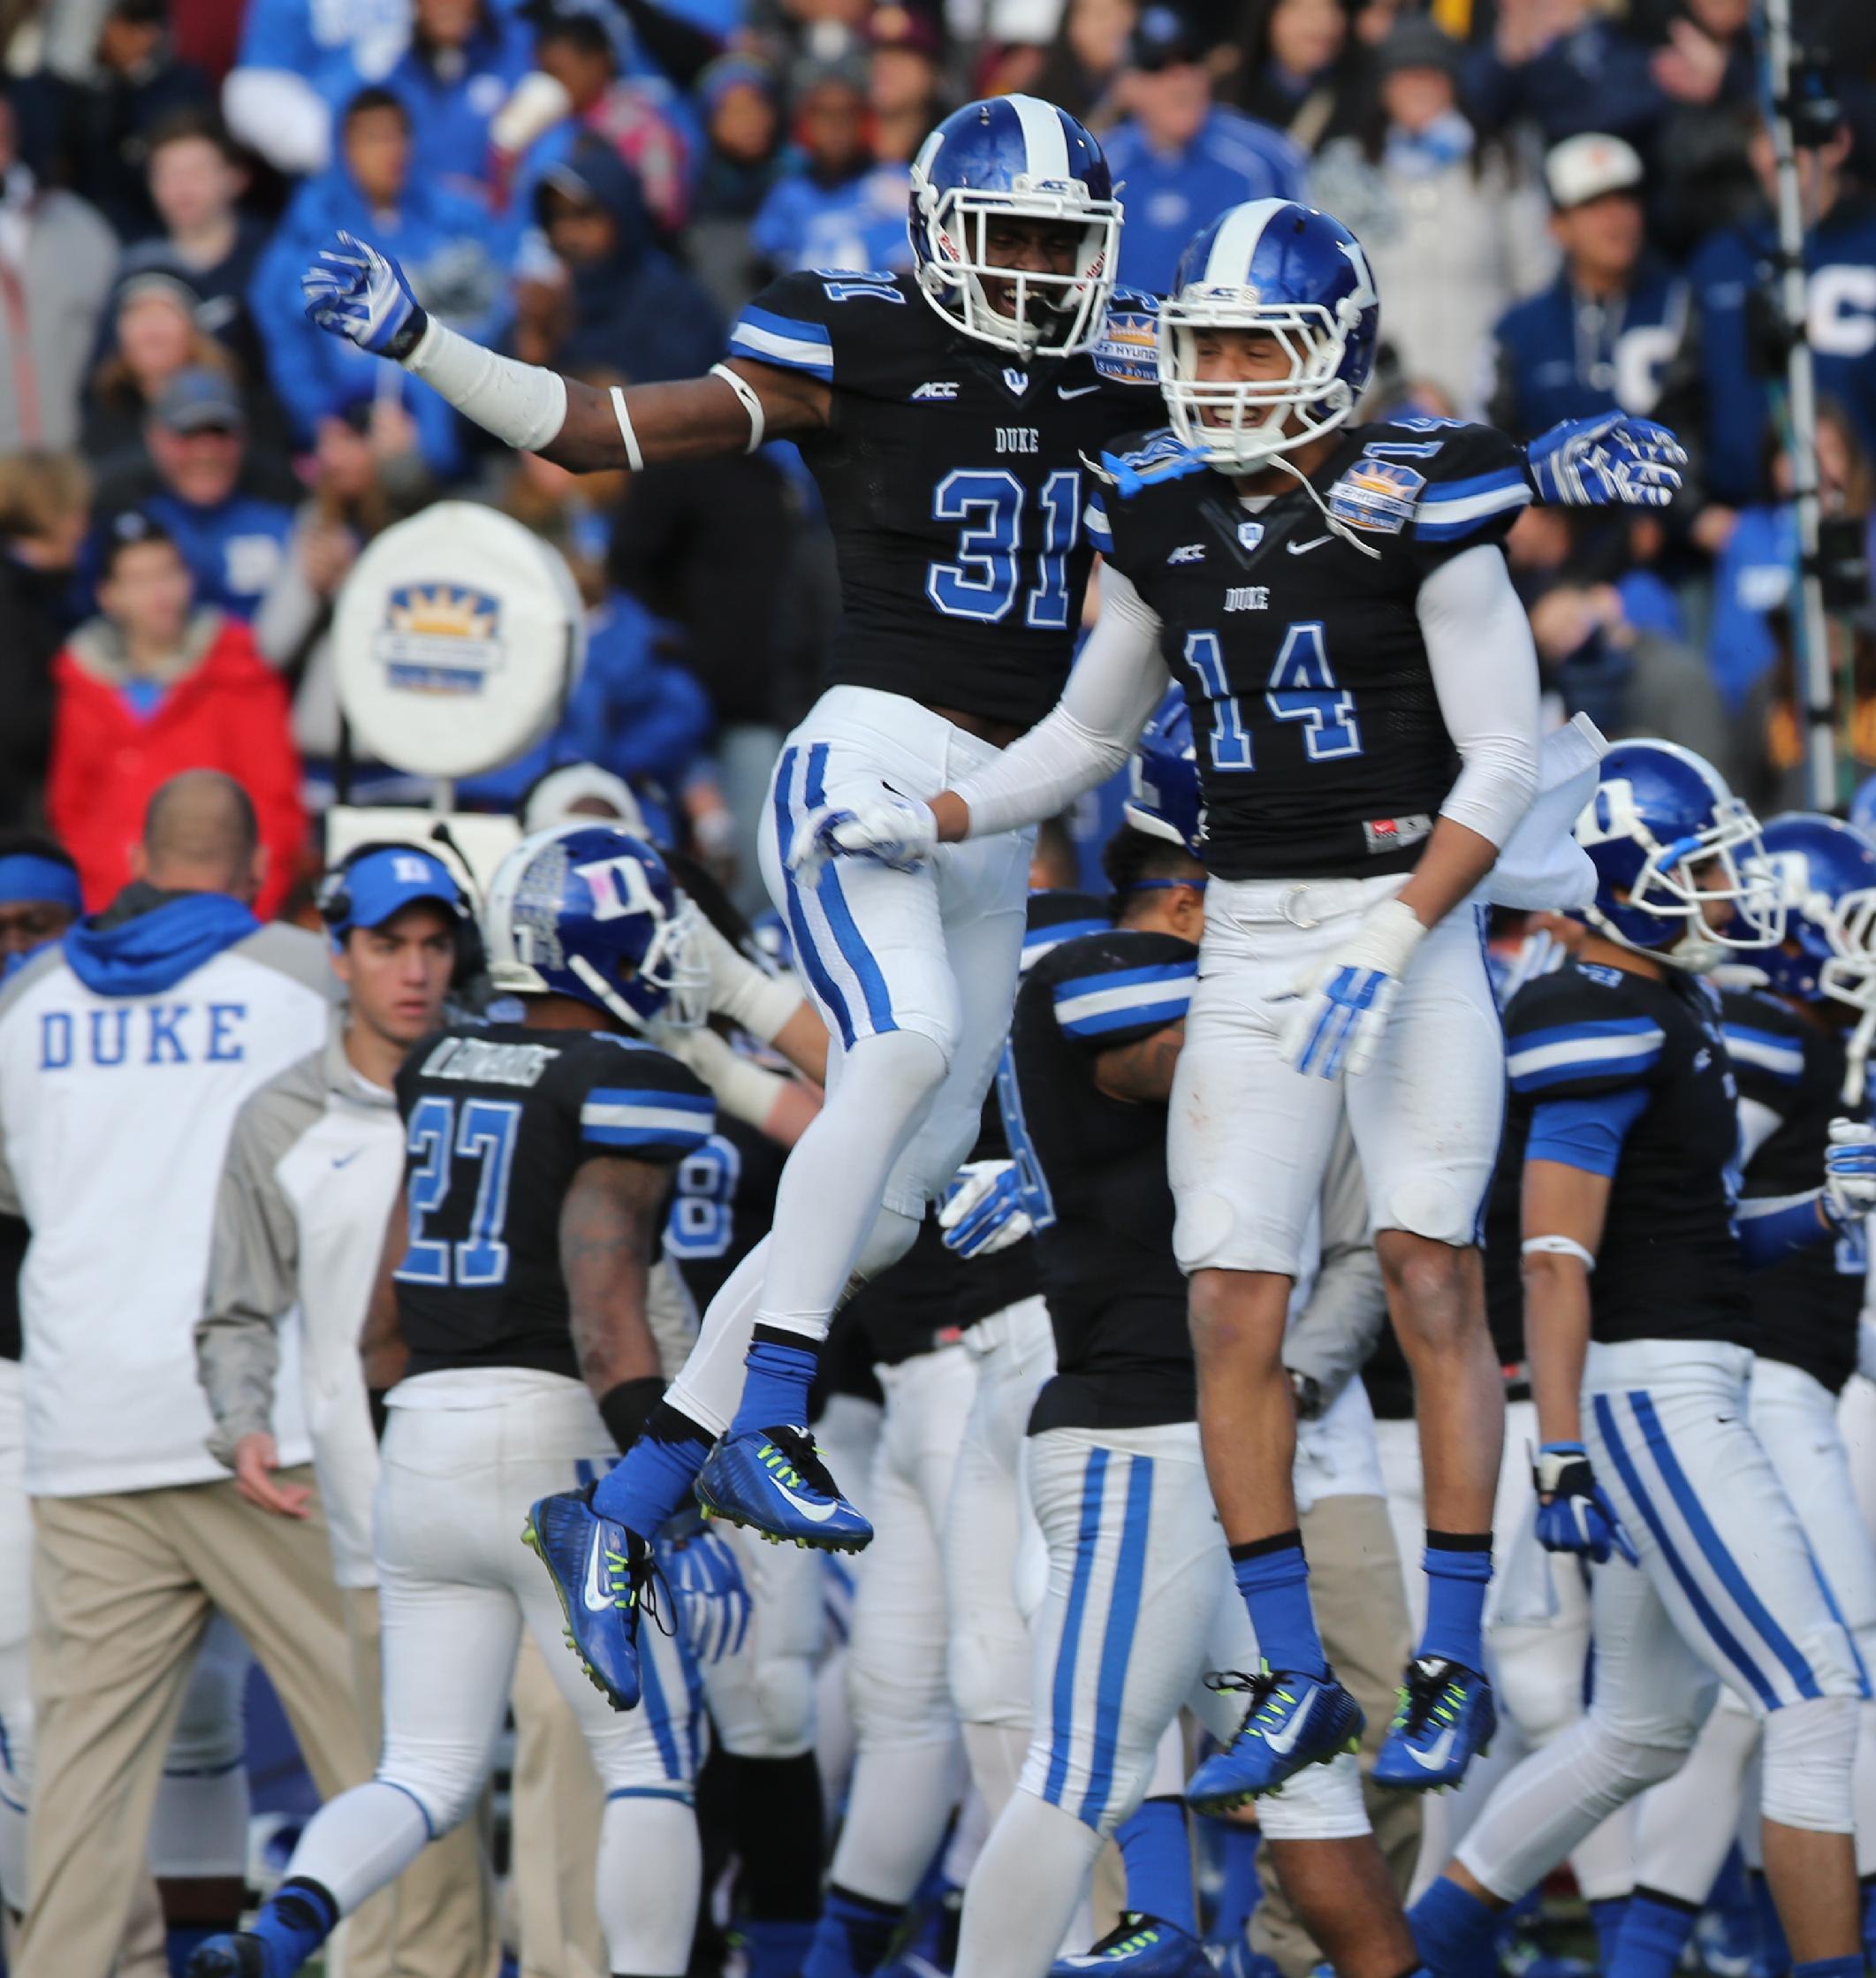 Duke's Breon Borders, left, and Bryon Fields celebrate stopping Arizona State on fourth down during the fourth quarter of the Sun Bowl NCAA college football game, Saturday, Dec. 27, 2014, in El Paso, Texas. (AP Photo/Victor Calzada)